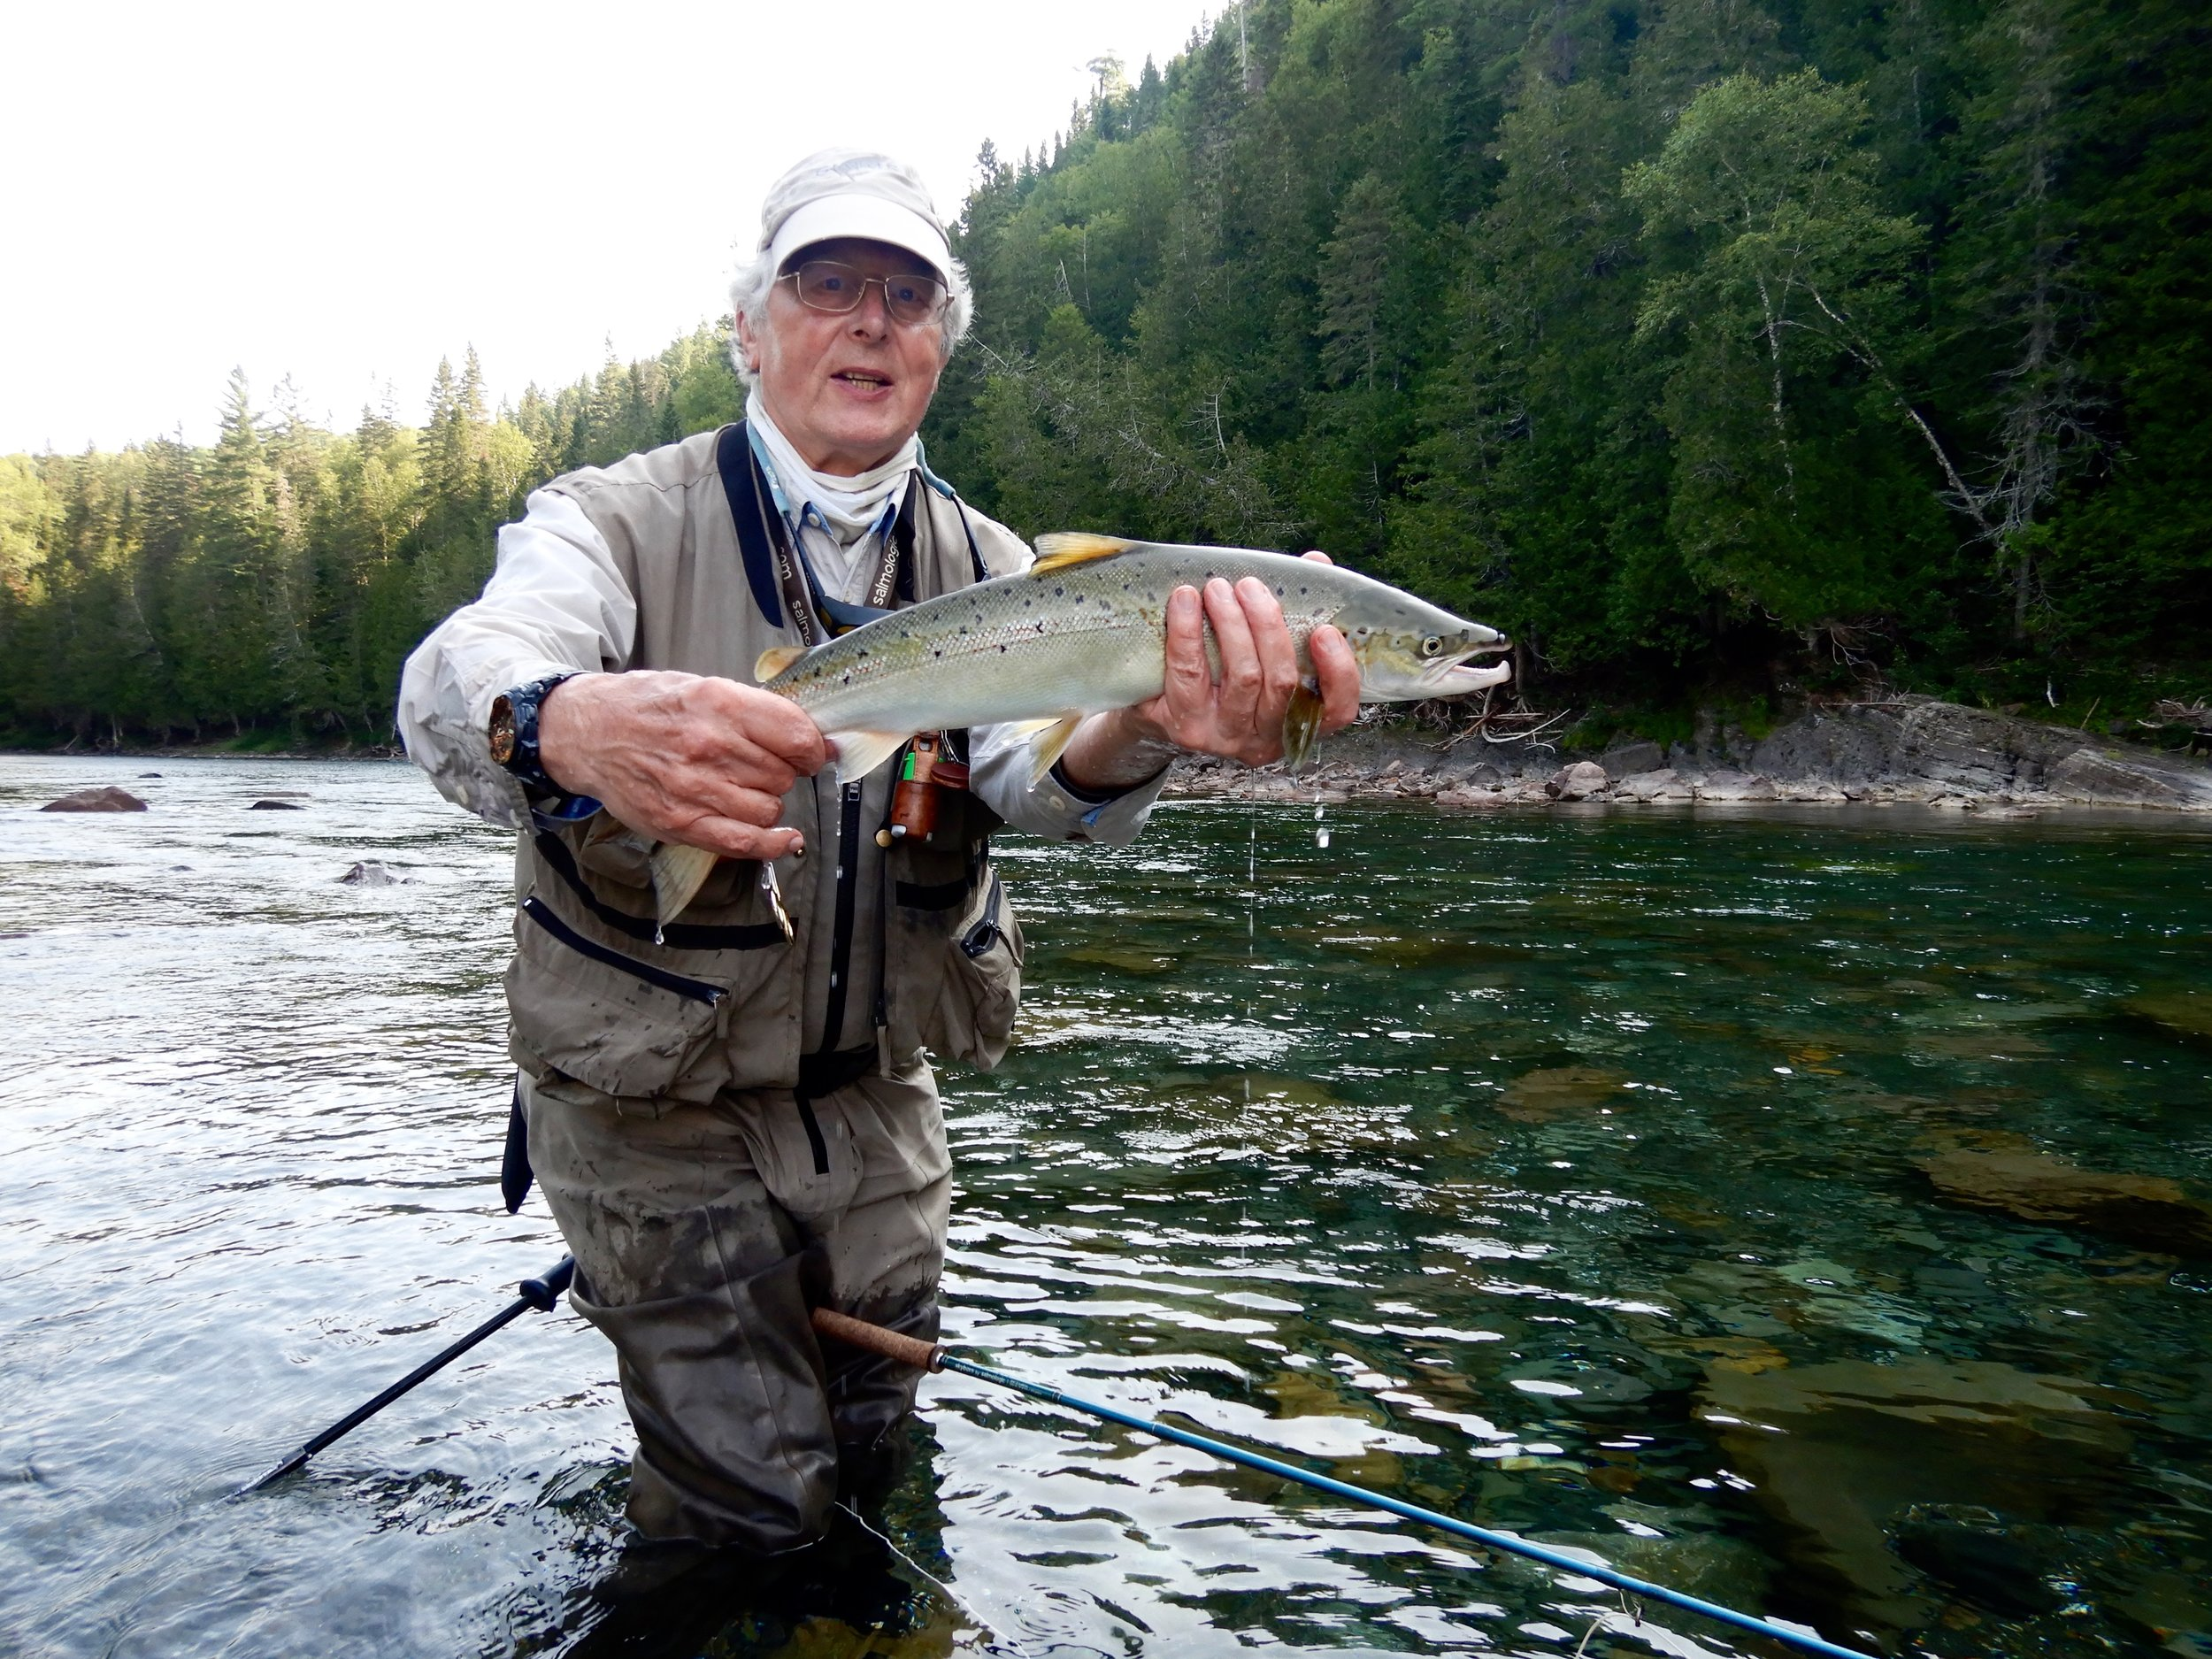 Tim Ingram is no stranger to Salmon Lodge or salmon fishing, nice start to the week. Well done Tim.